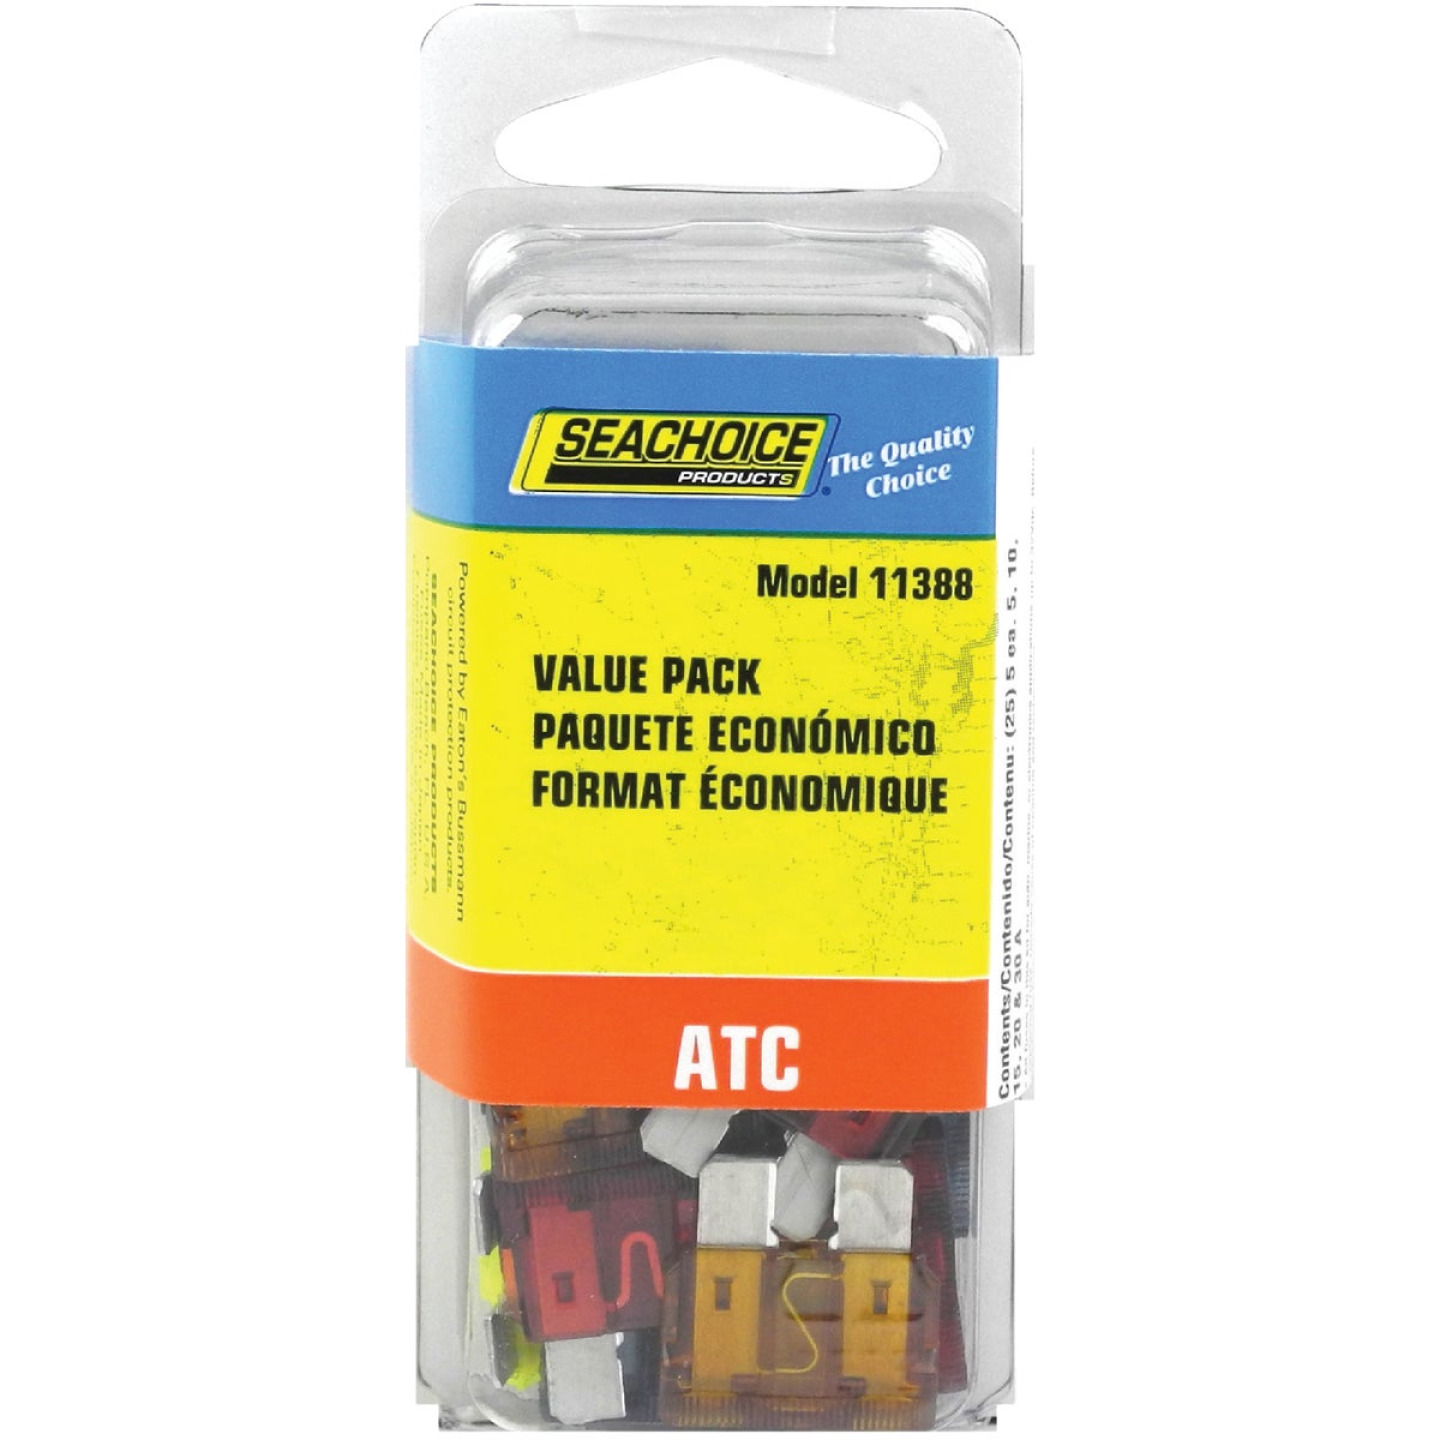 Seachoice Marine ATC Blade Fuse Assortment (25-Pack) Image 1